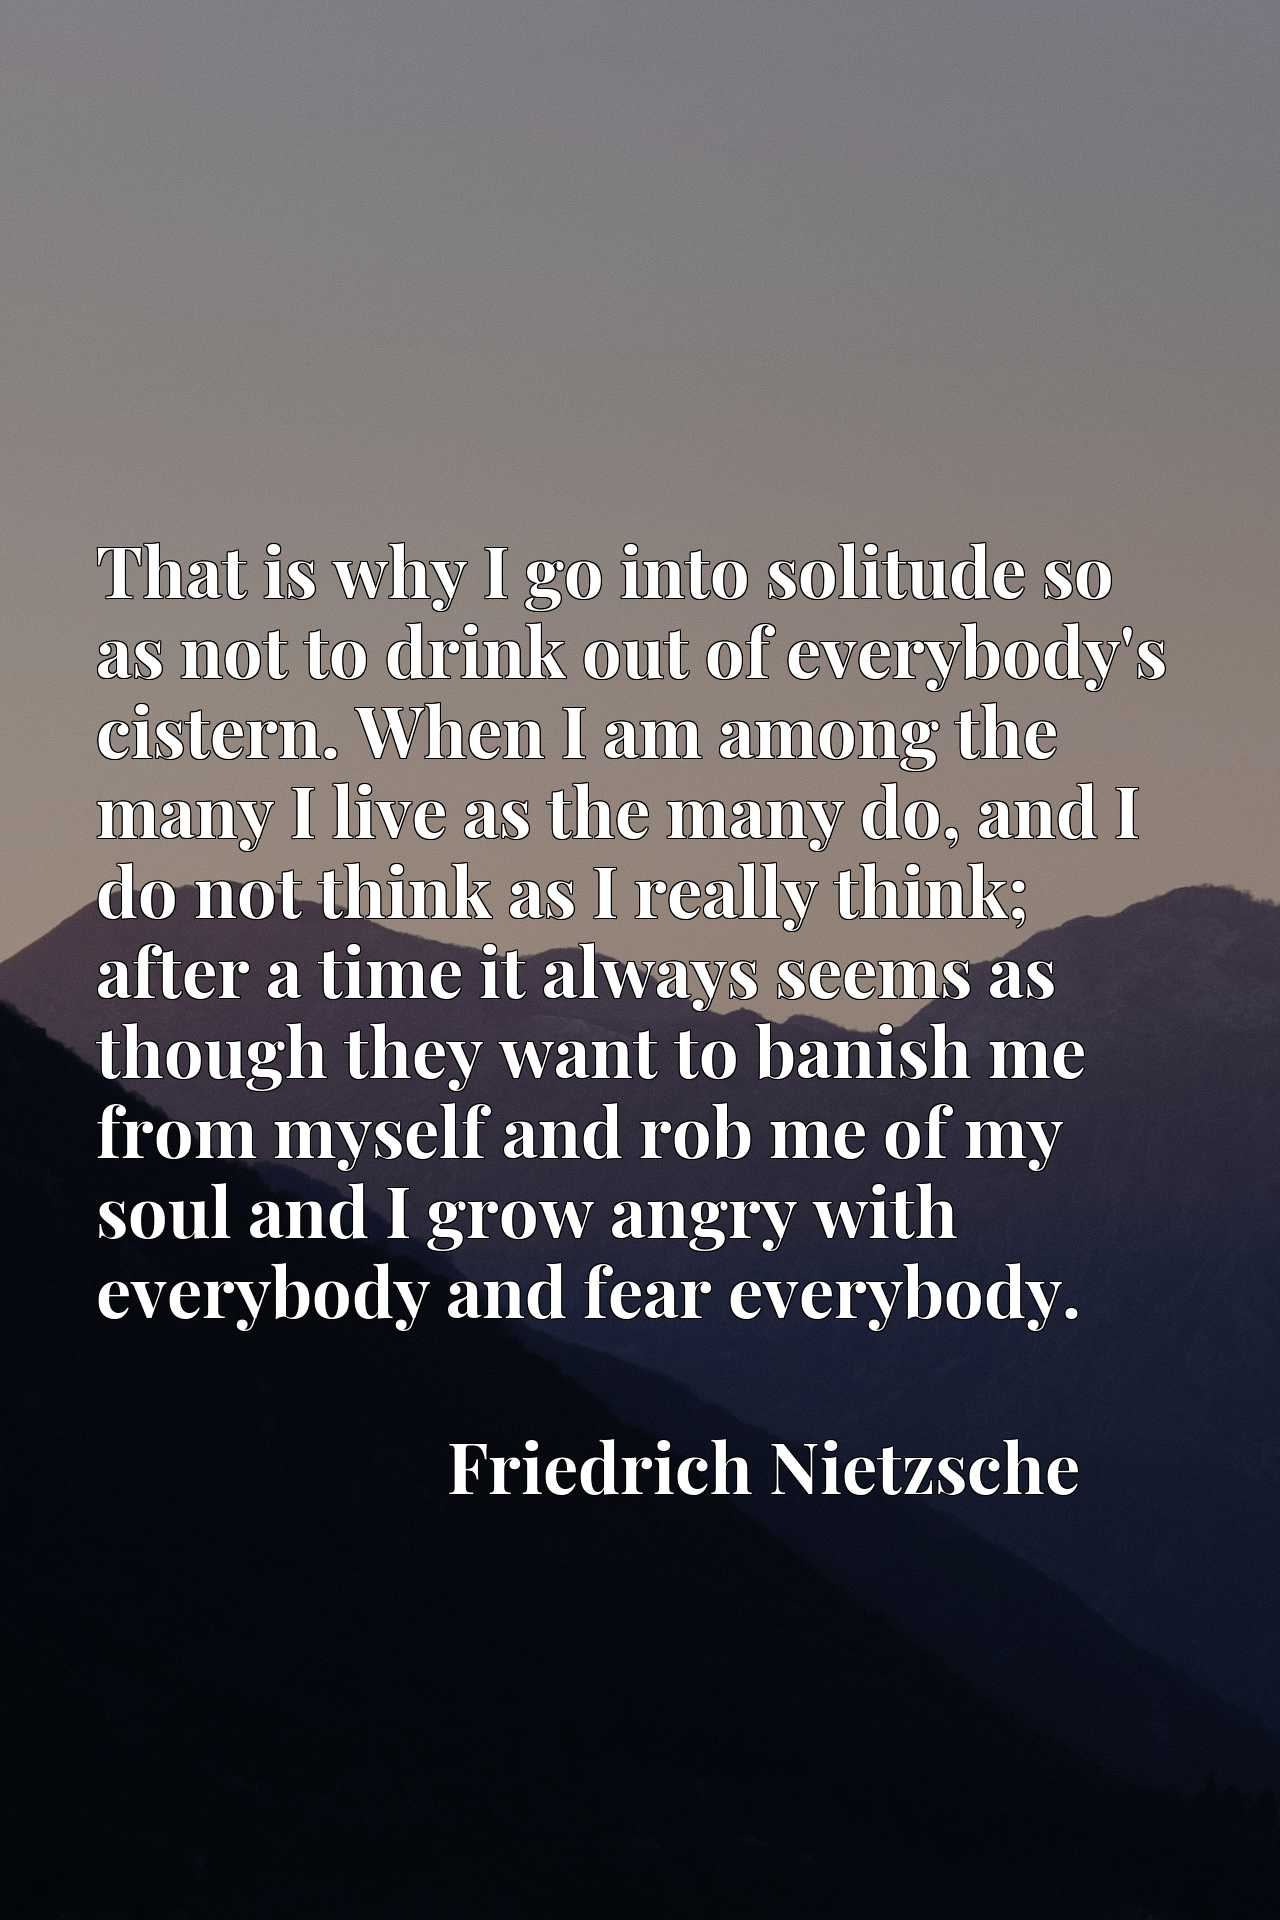 That is why I go into solitude so as not to drink out of everybody's cistern. When I am among the many I live as the many do, and I do not think as I really think; after a time it always seems as though they want to banish me from myself and rob me of my soul and I grow angry with everybody and fear everybody.